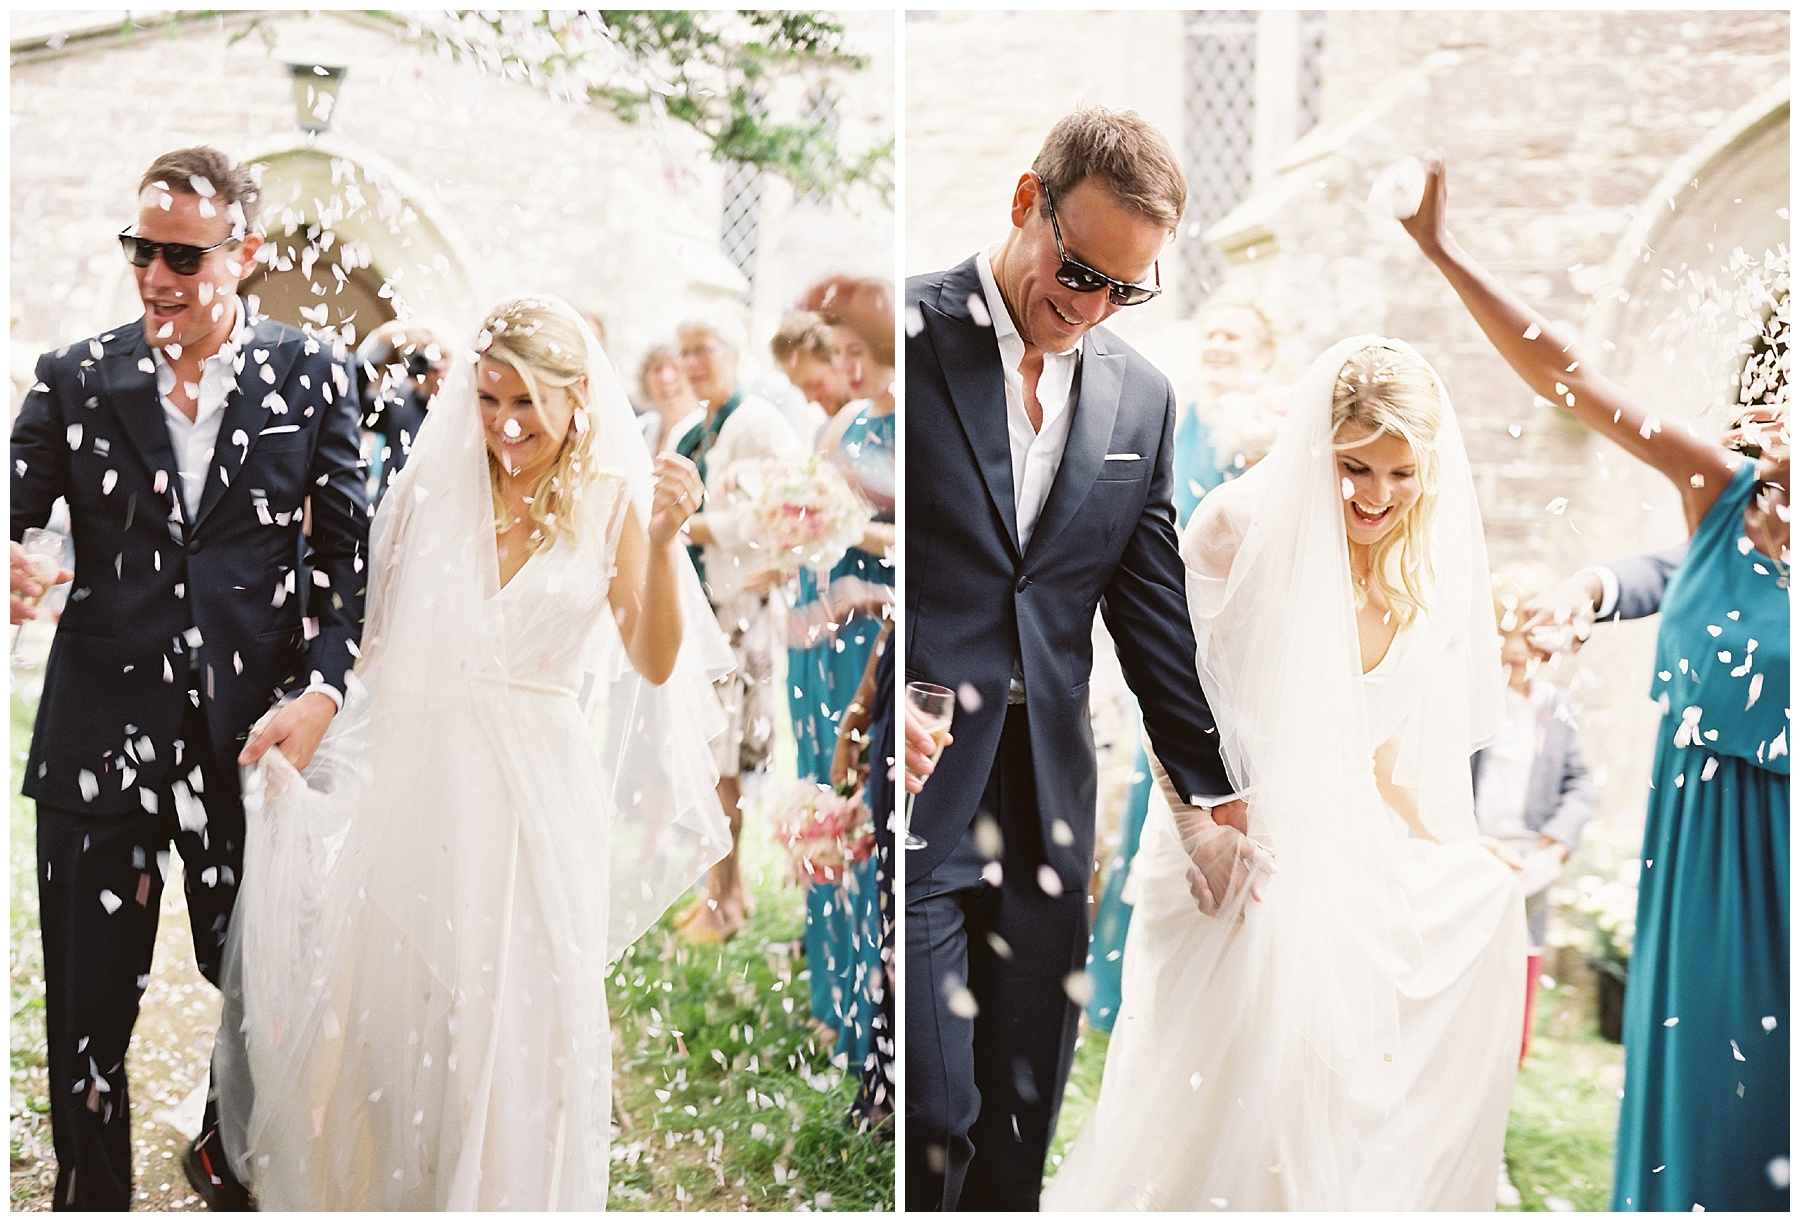 confetti wedding photos charlie brear